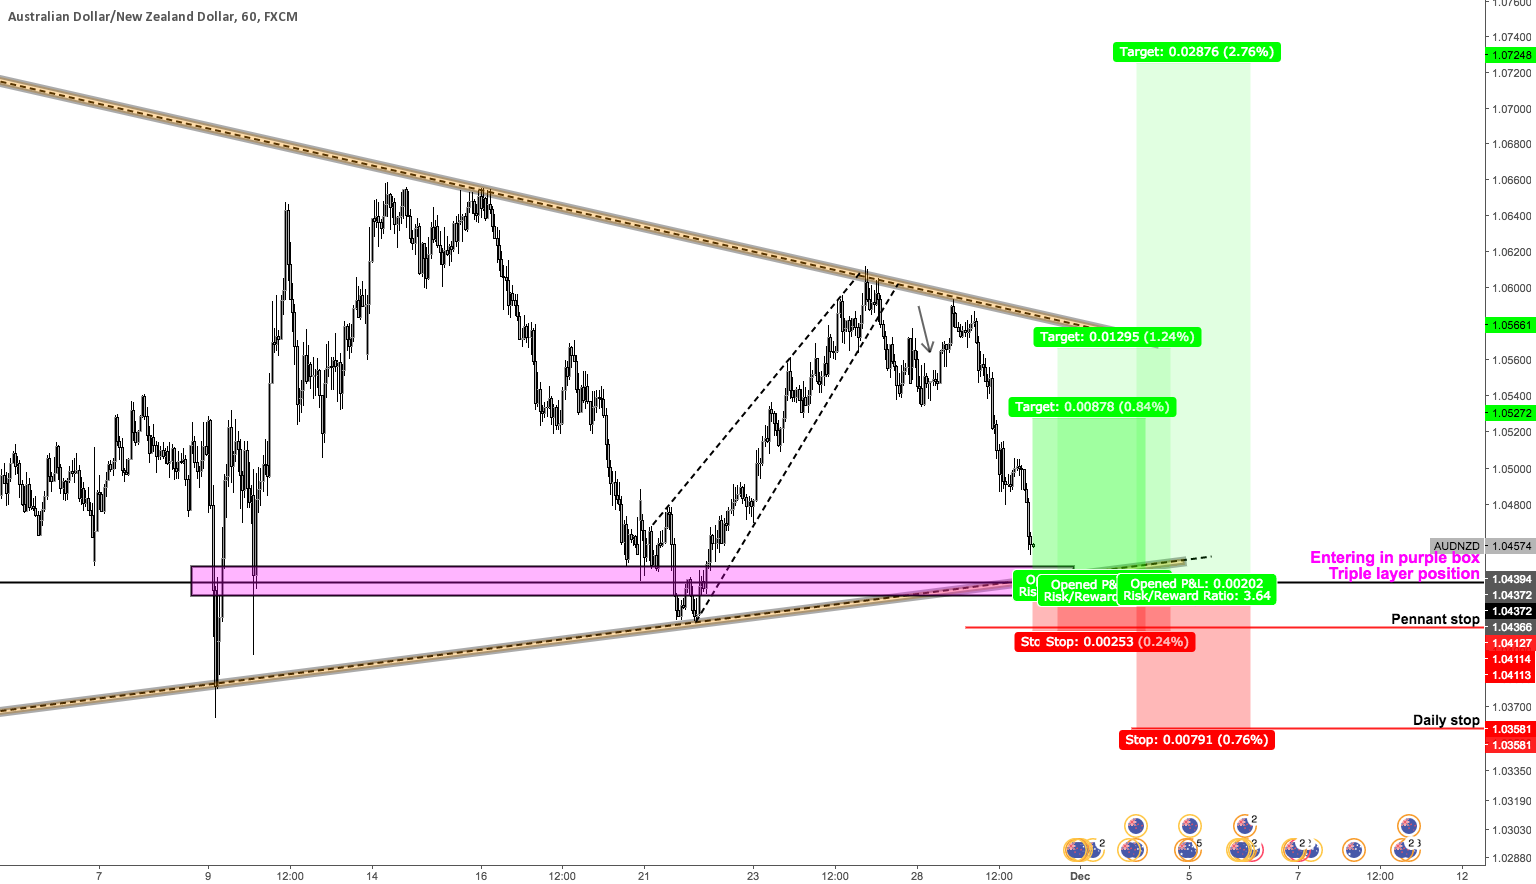 AUDNZD: Buying the lower bound of the pennant